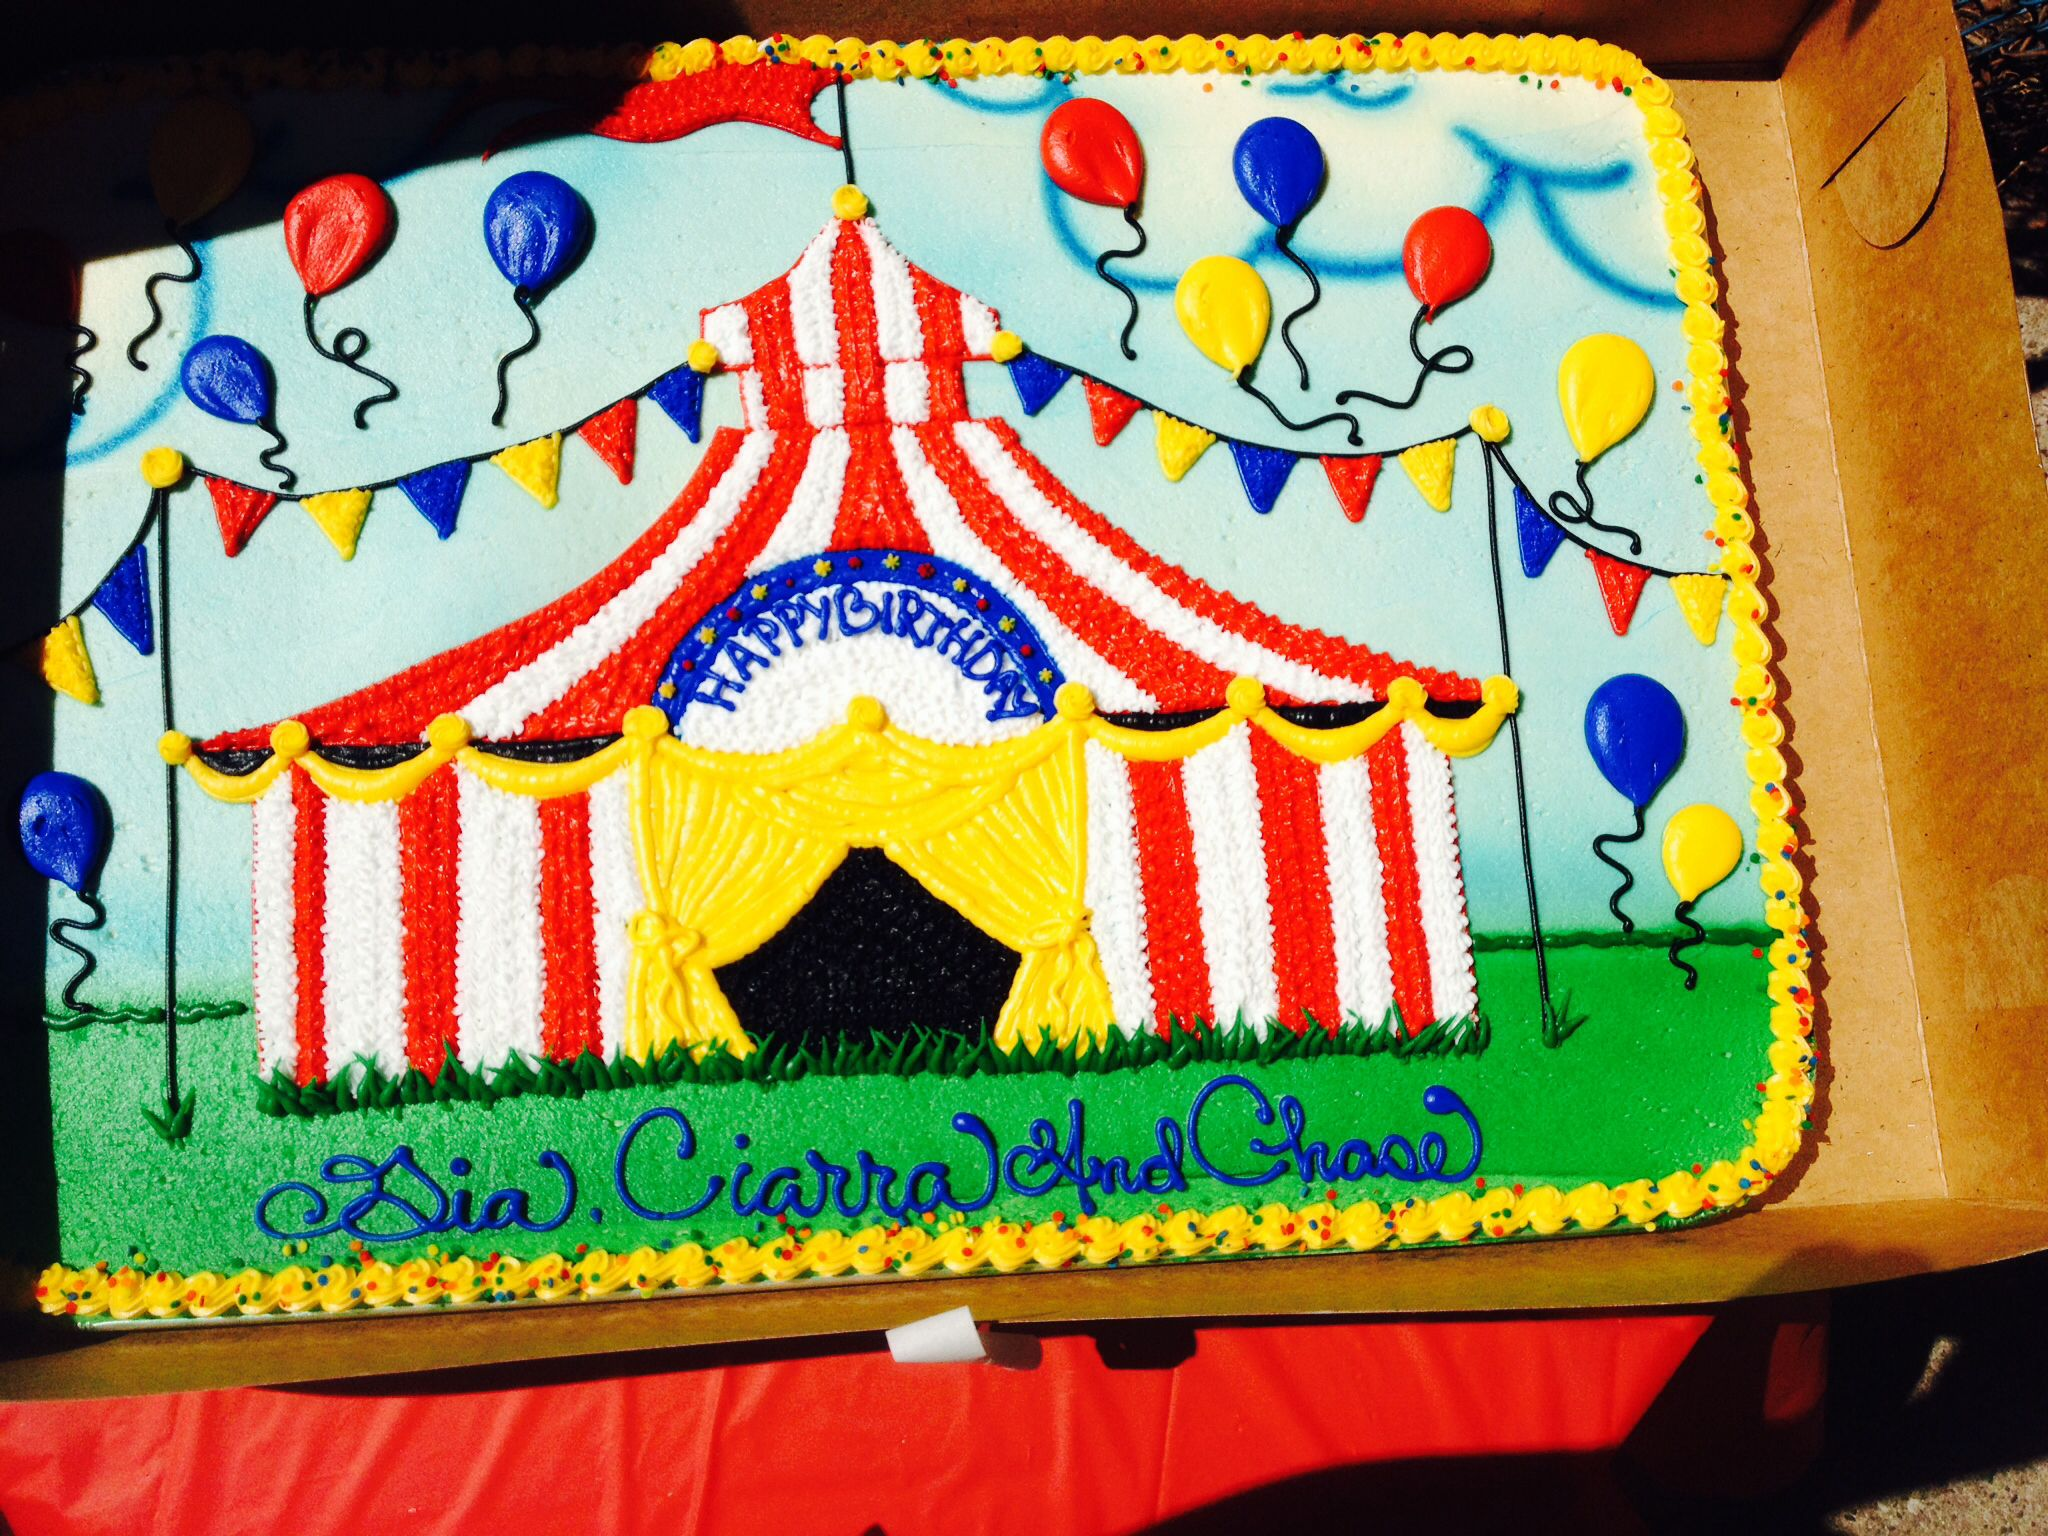 Carnival themebig top sheet cake design fiesta Bruno y Baby